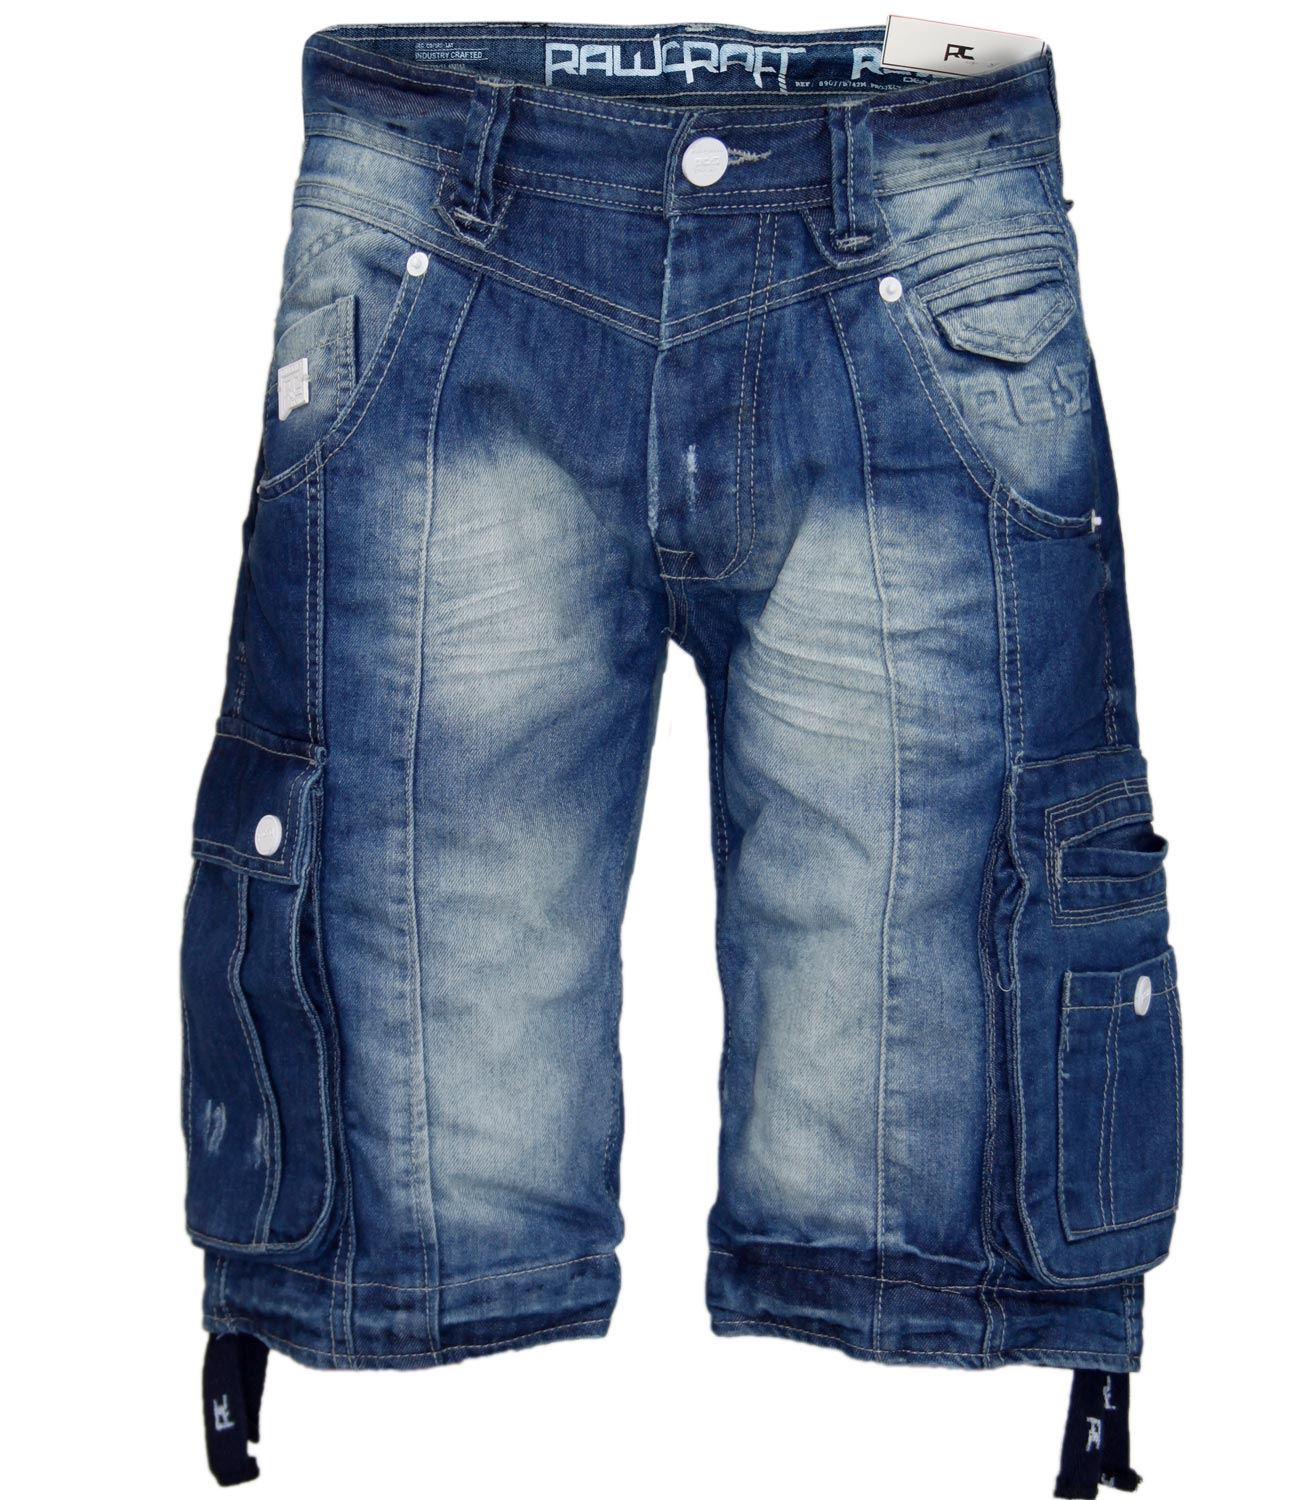 Mens Designer Rawcraft Denim Cargo Combat Three Quarter Bermuda ...